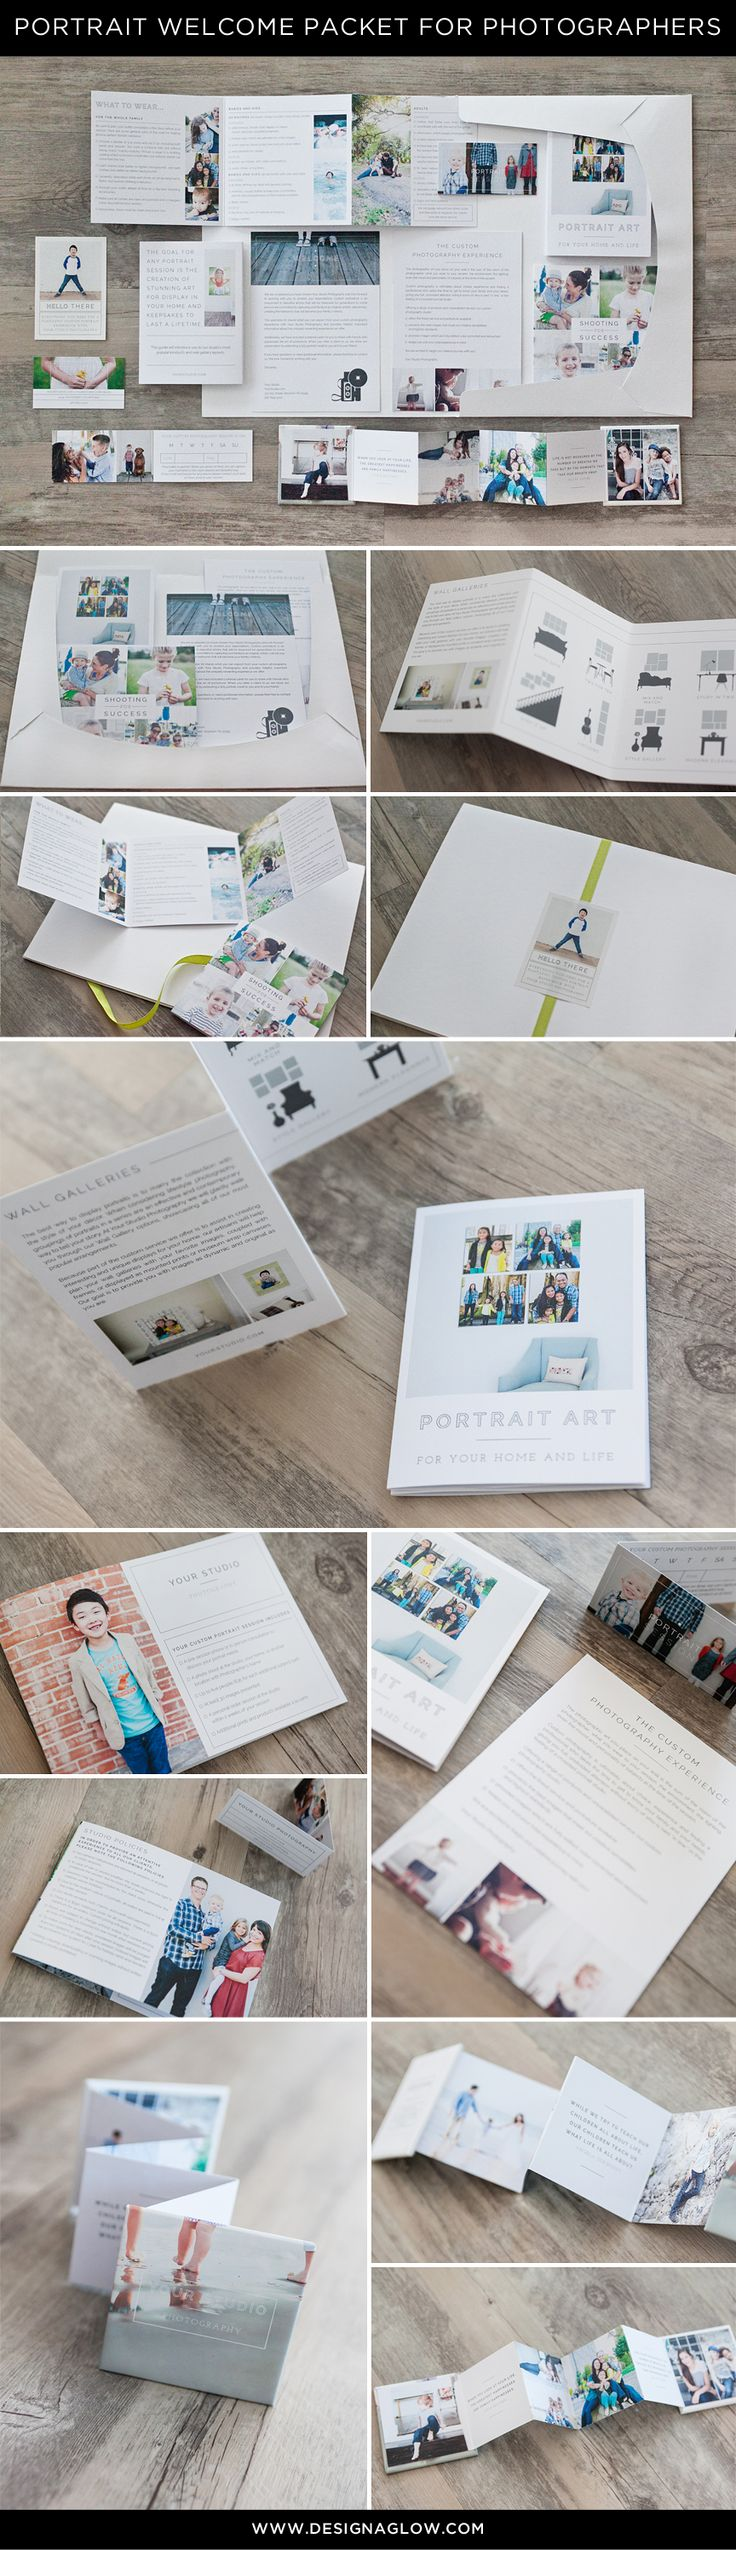 welcome packet for portrait photographers by designaglow